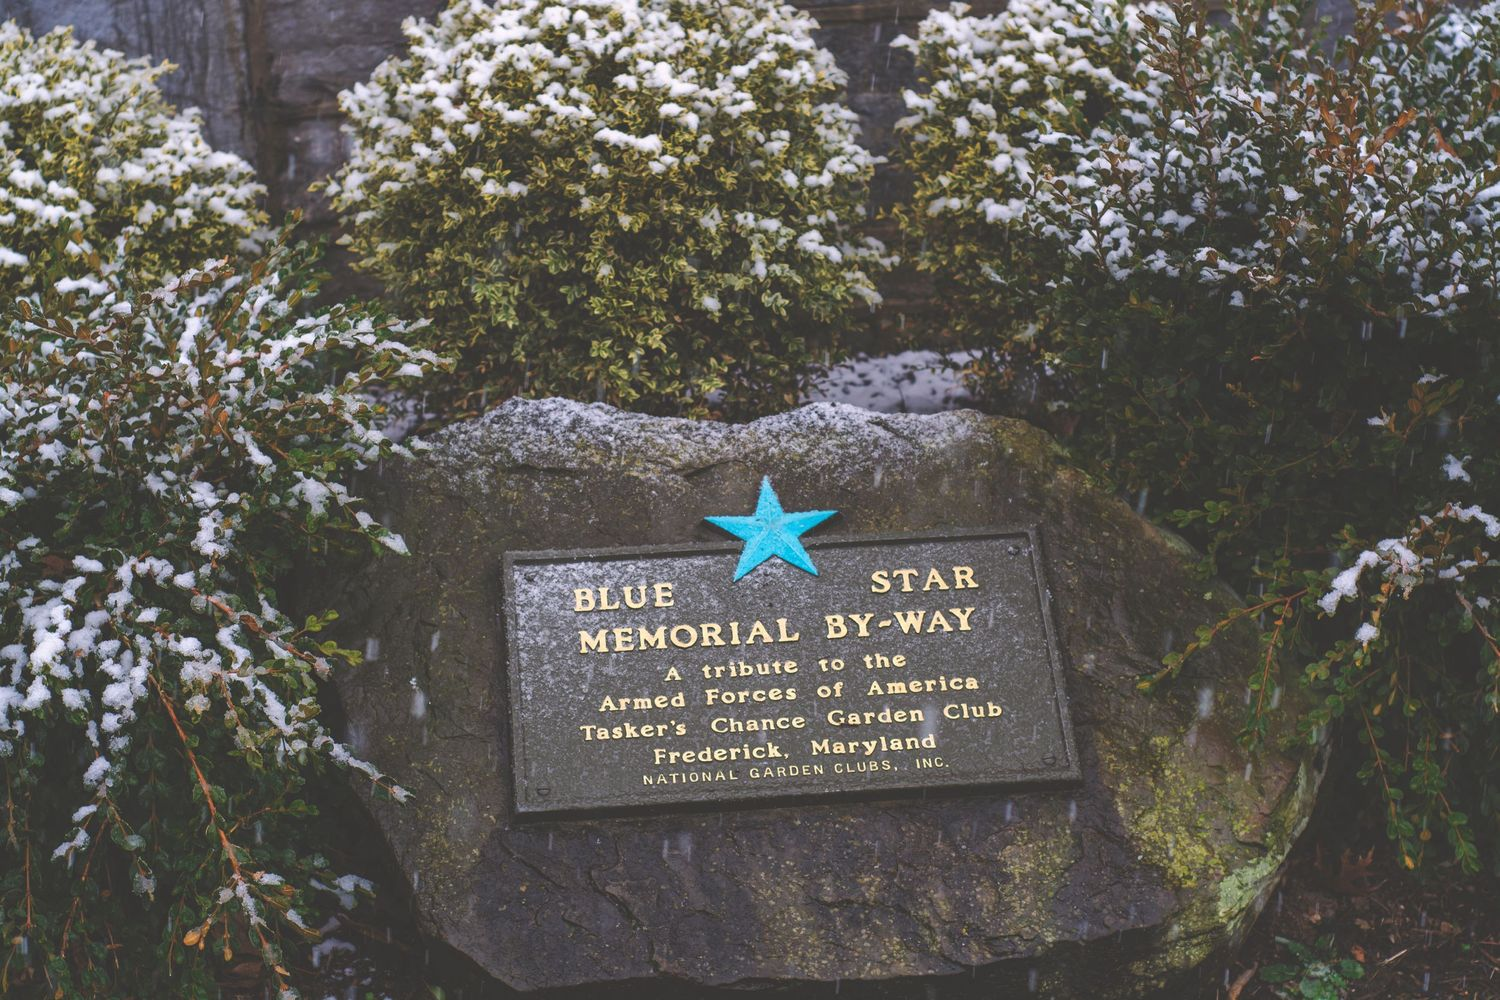 A placard on a stone for the Blue Star Memorial By-Way.